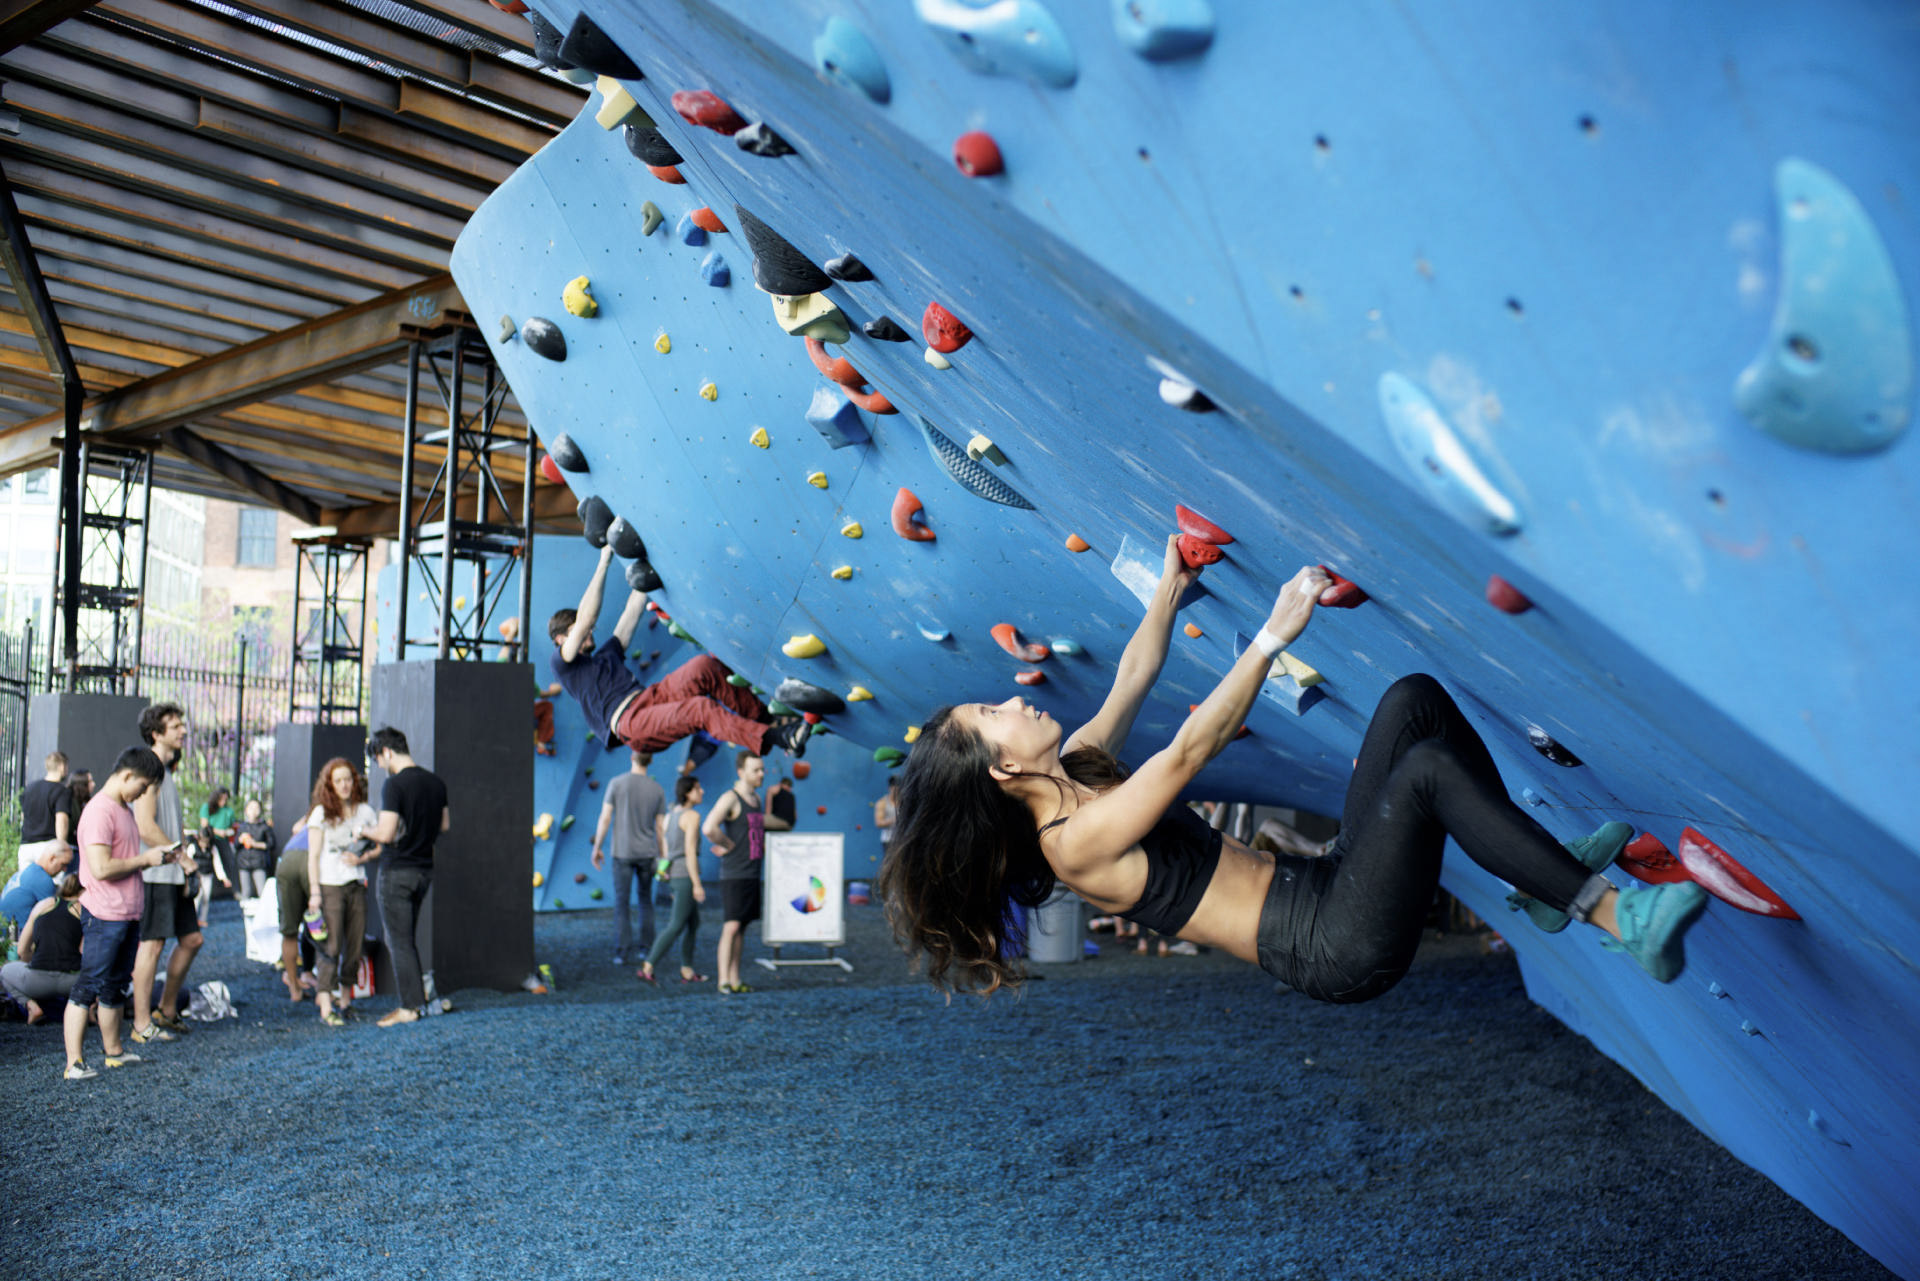 Climbing Shoes - Like pointe shoes for the rock wall. Specially formulated rubber makes the soles super sticky for gripping small footholds on the wall. Rentals are included with your day pass or get fitted for your perfect pair in our gear shop at The Cliffs at LIC. Youth sizes may be limited: youth climbers may scale our walls in sneakers.